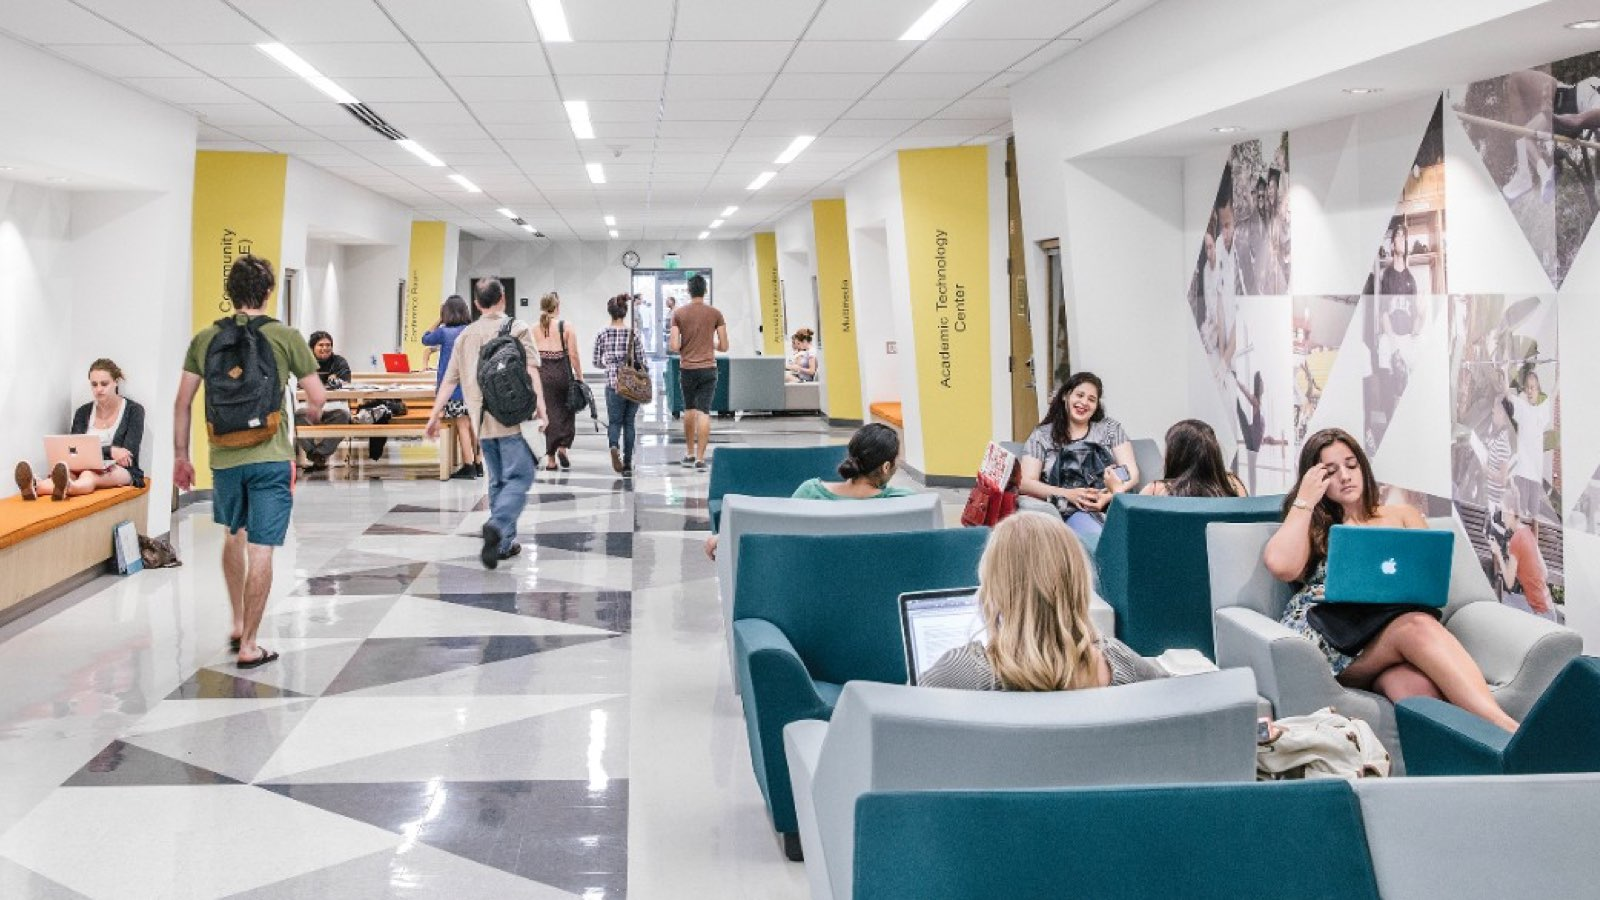 A well-lit hallway with students studying in Swoop Lounge Furniture. Select to find out how we help college and university leaders create learning spaces that can keep pace with students.